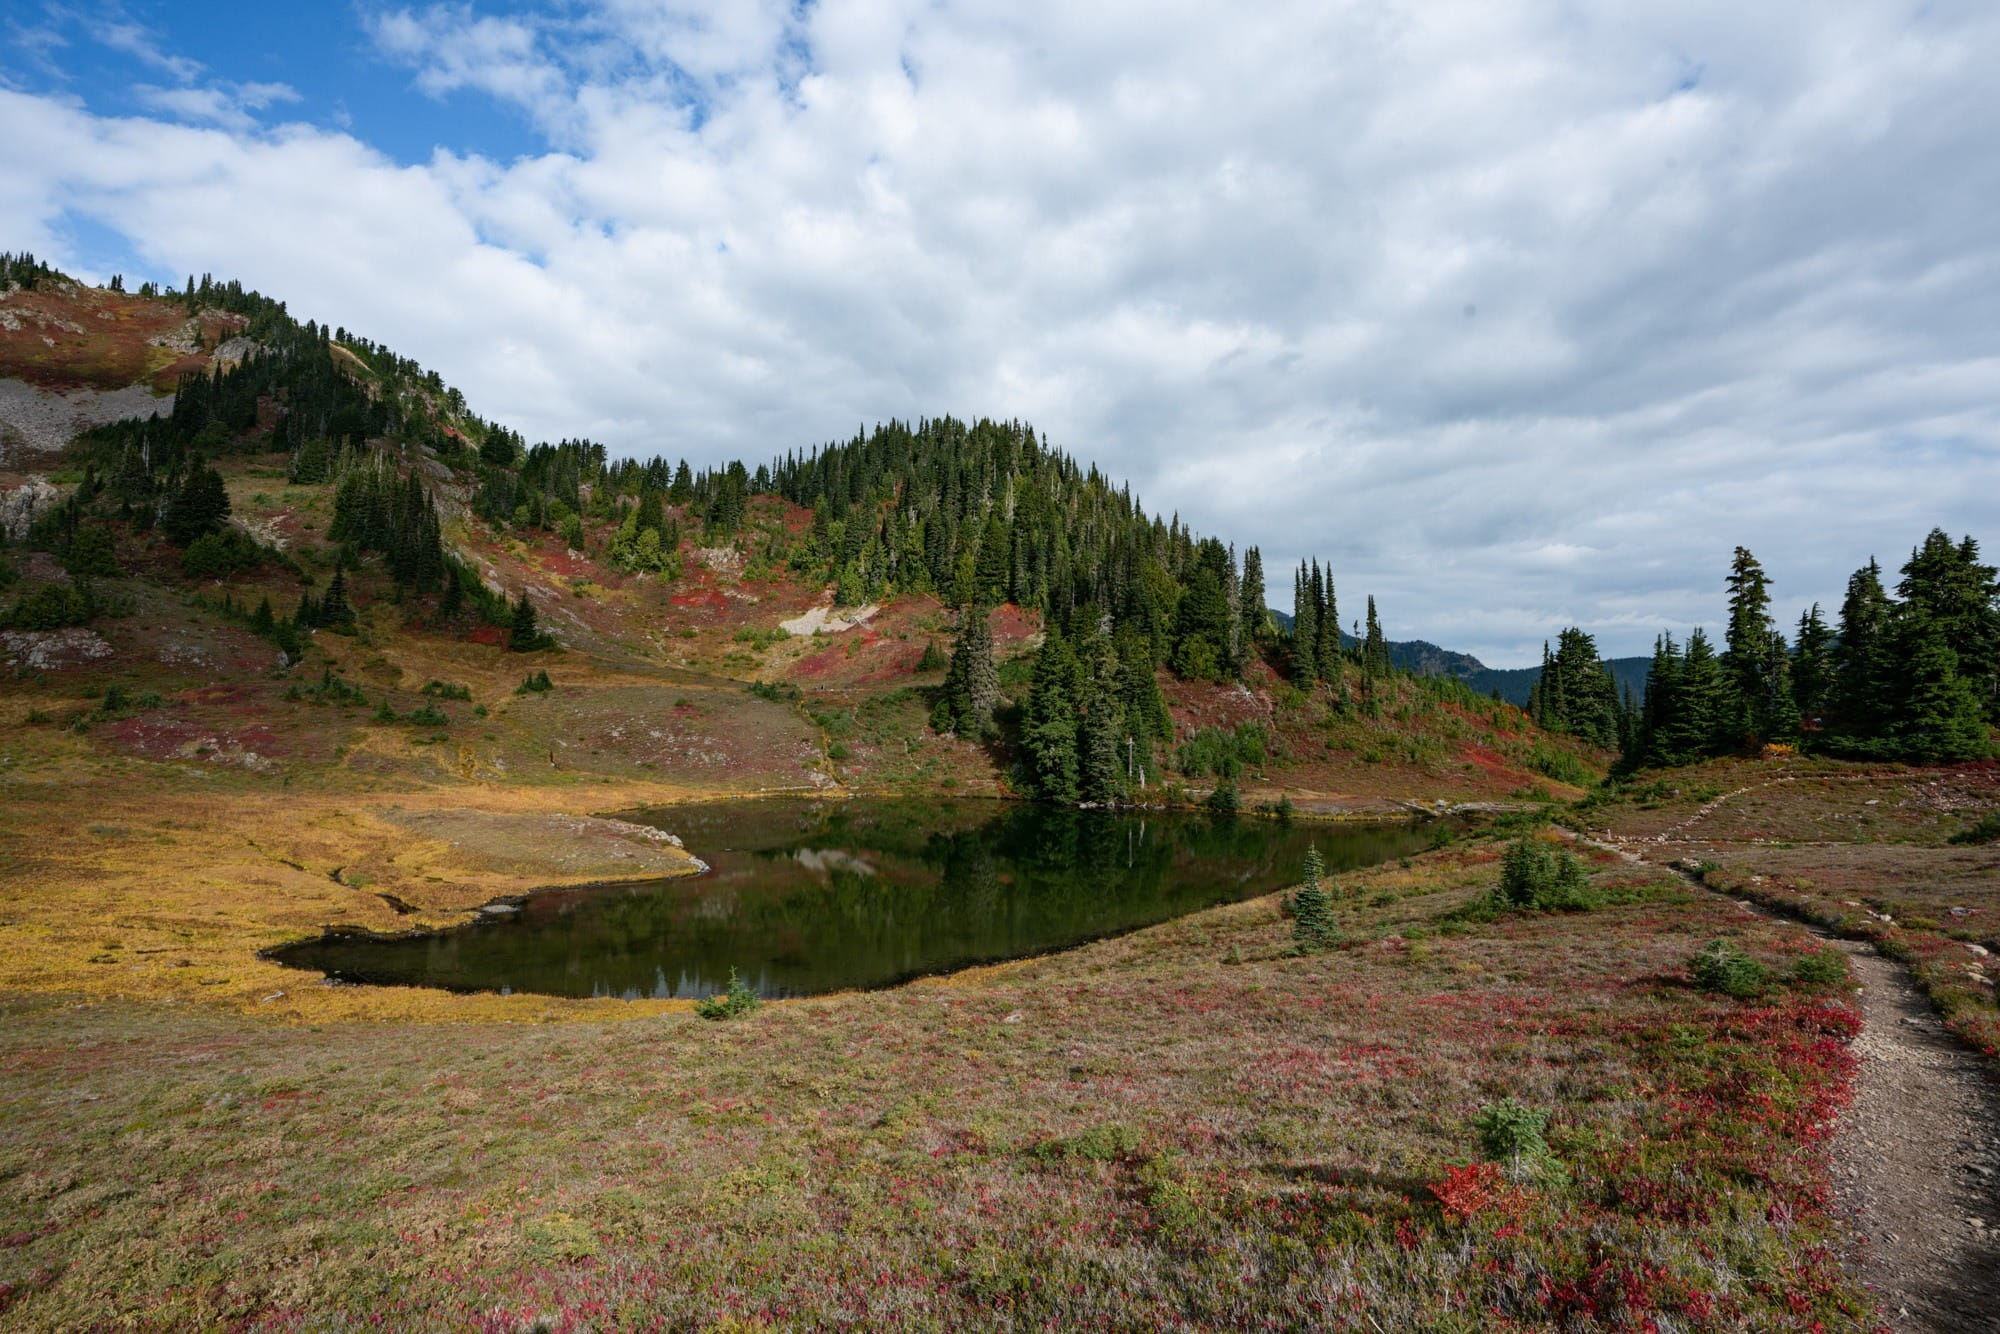 Get my full trail report from backpacking Olympic National Park's High Divide Trail with REI Adventures, including info on campsites, gear & more.